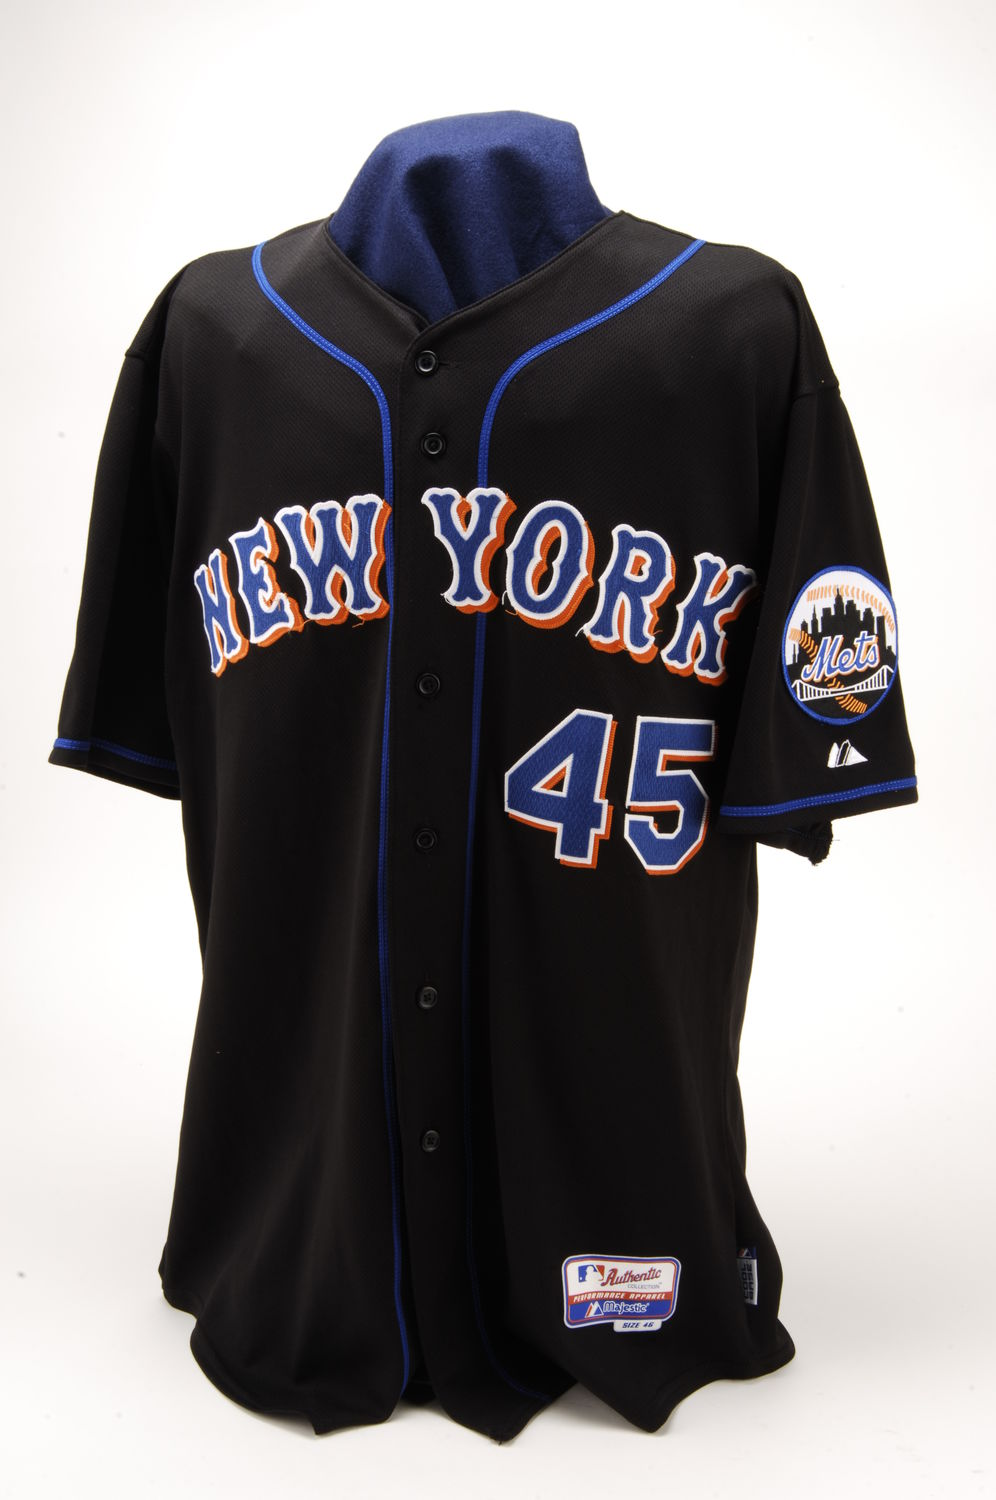 44db50041 New York Mets jersey worn by Pedro Martínez when he became just the 15th  hurler to log 3